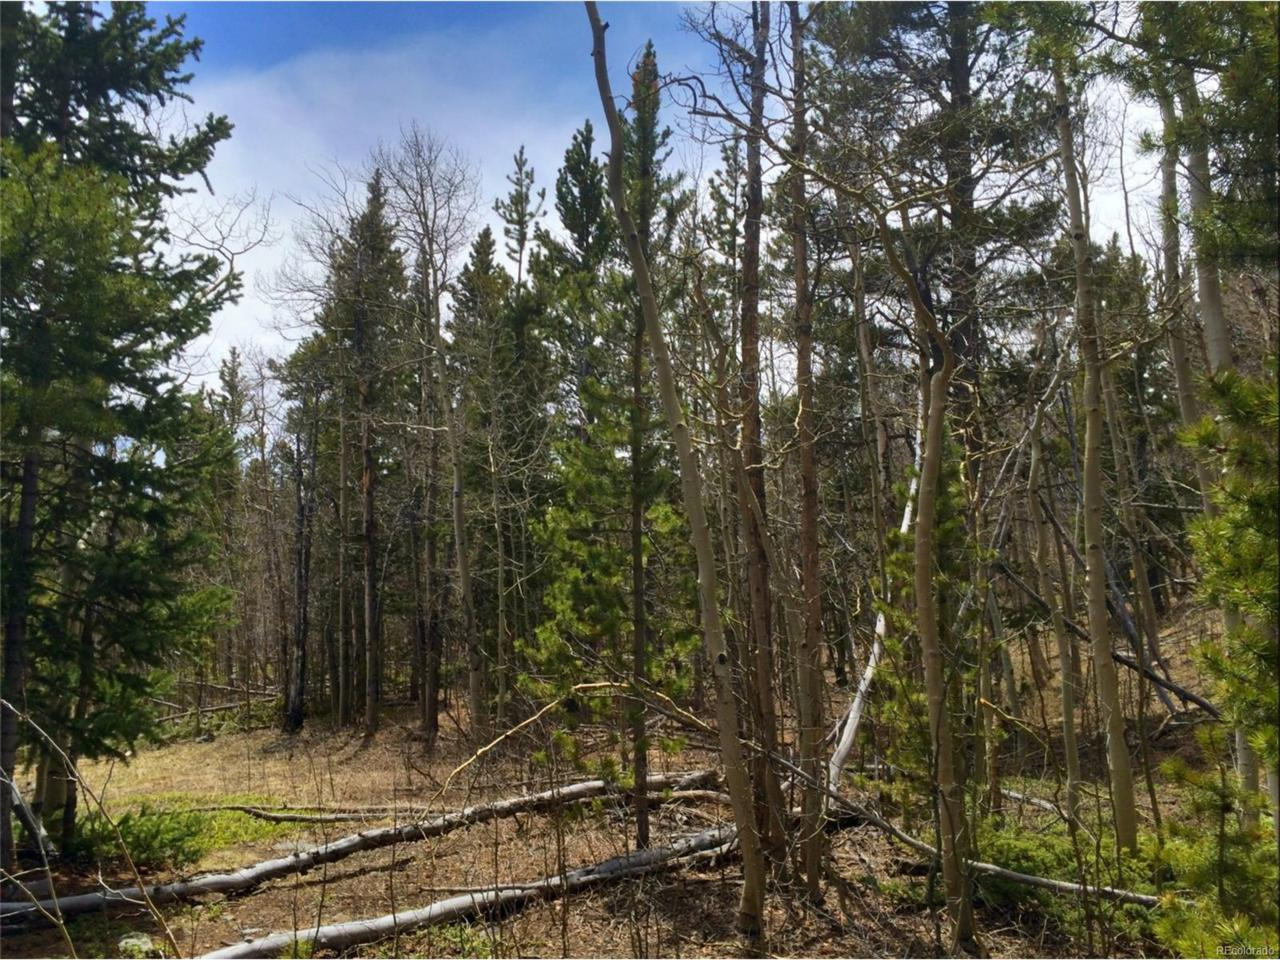 0 Vots Drive, Fairplay, CO 80440 (MLS #7066975) :: 8z Real Estate